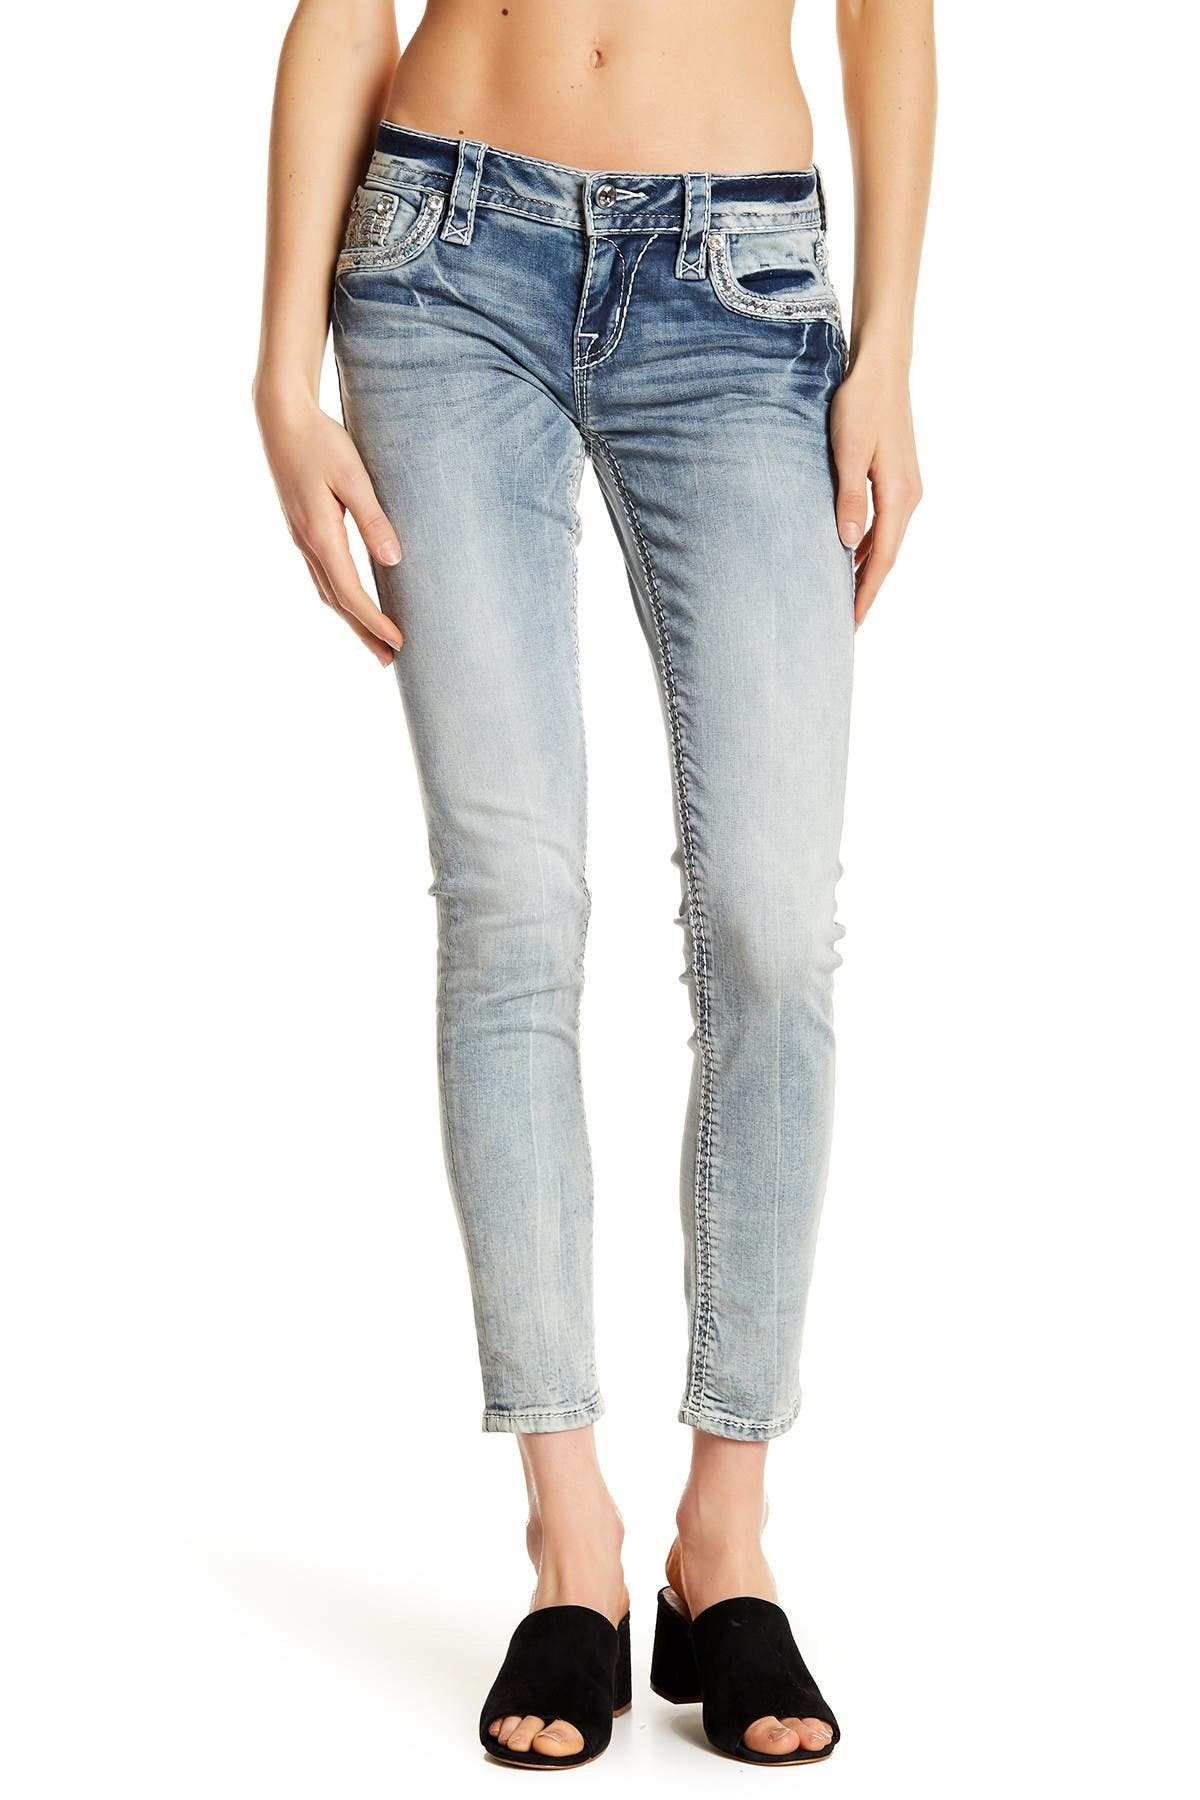 Image of Rock Revival Hanaya Ankle Skinny Jeans